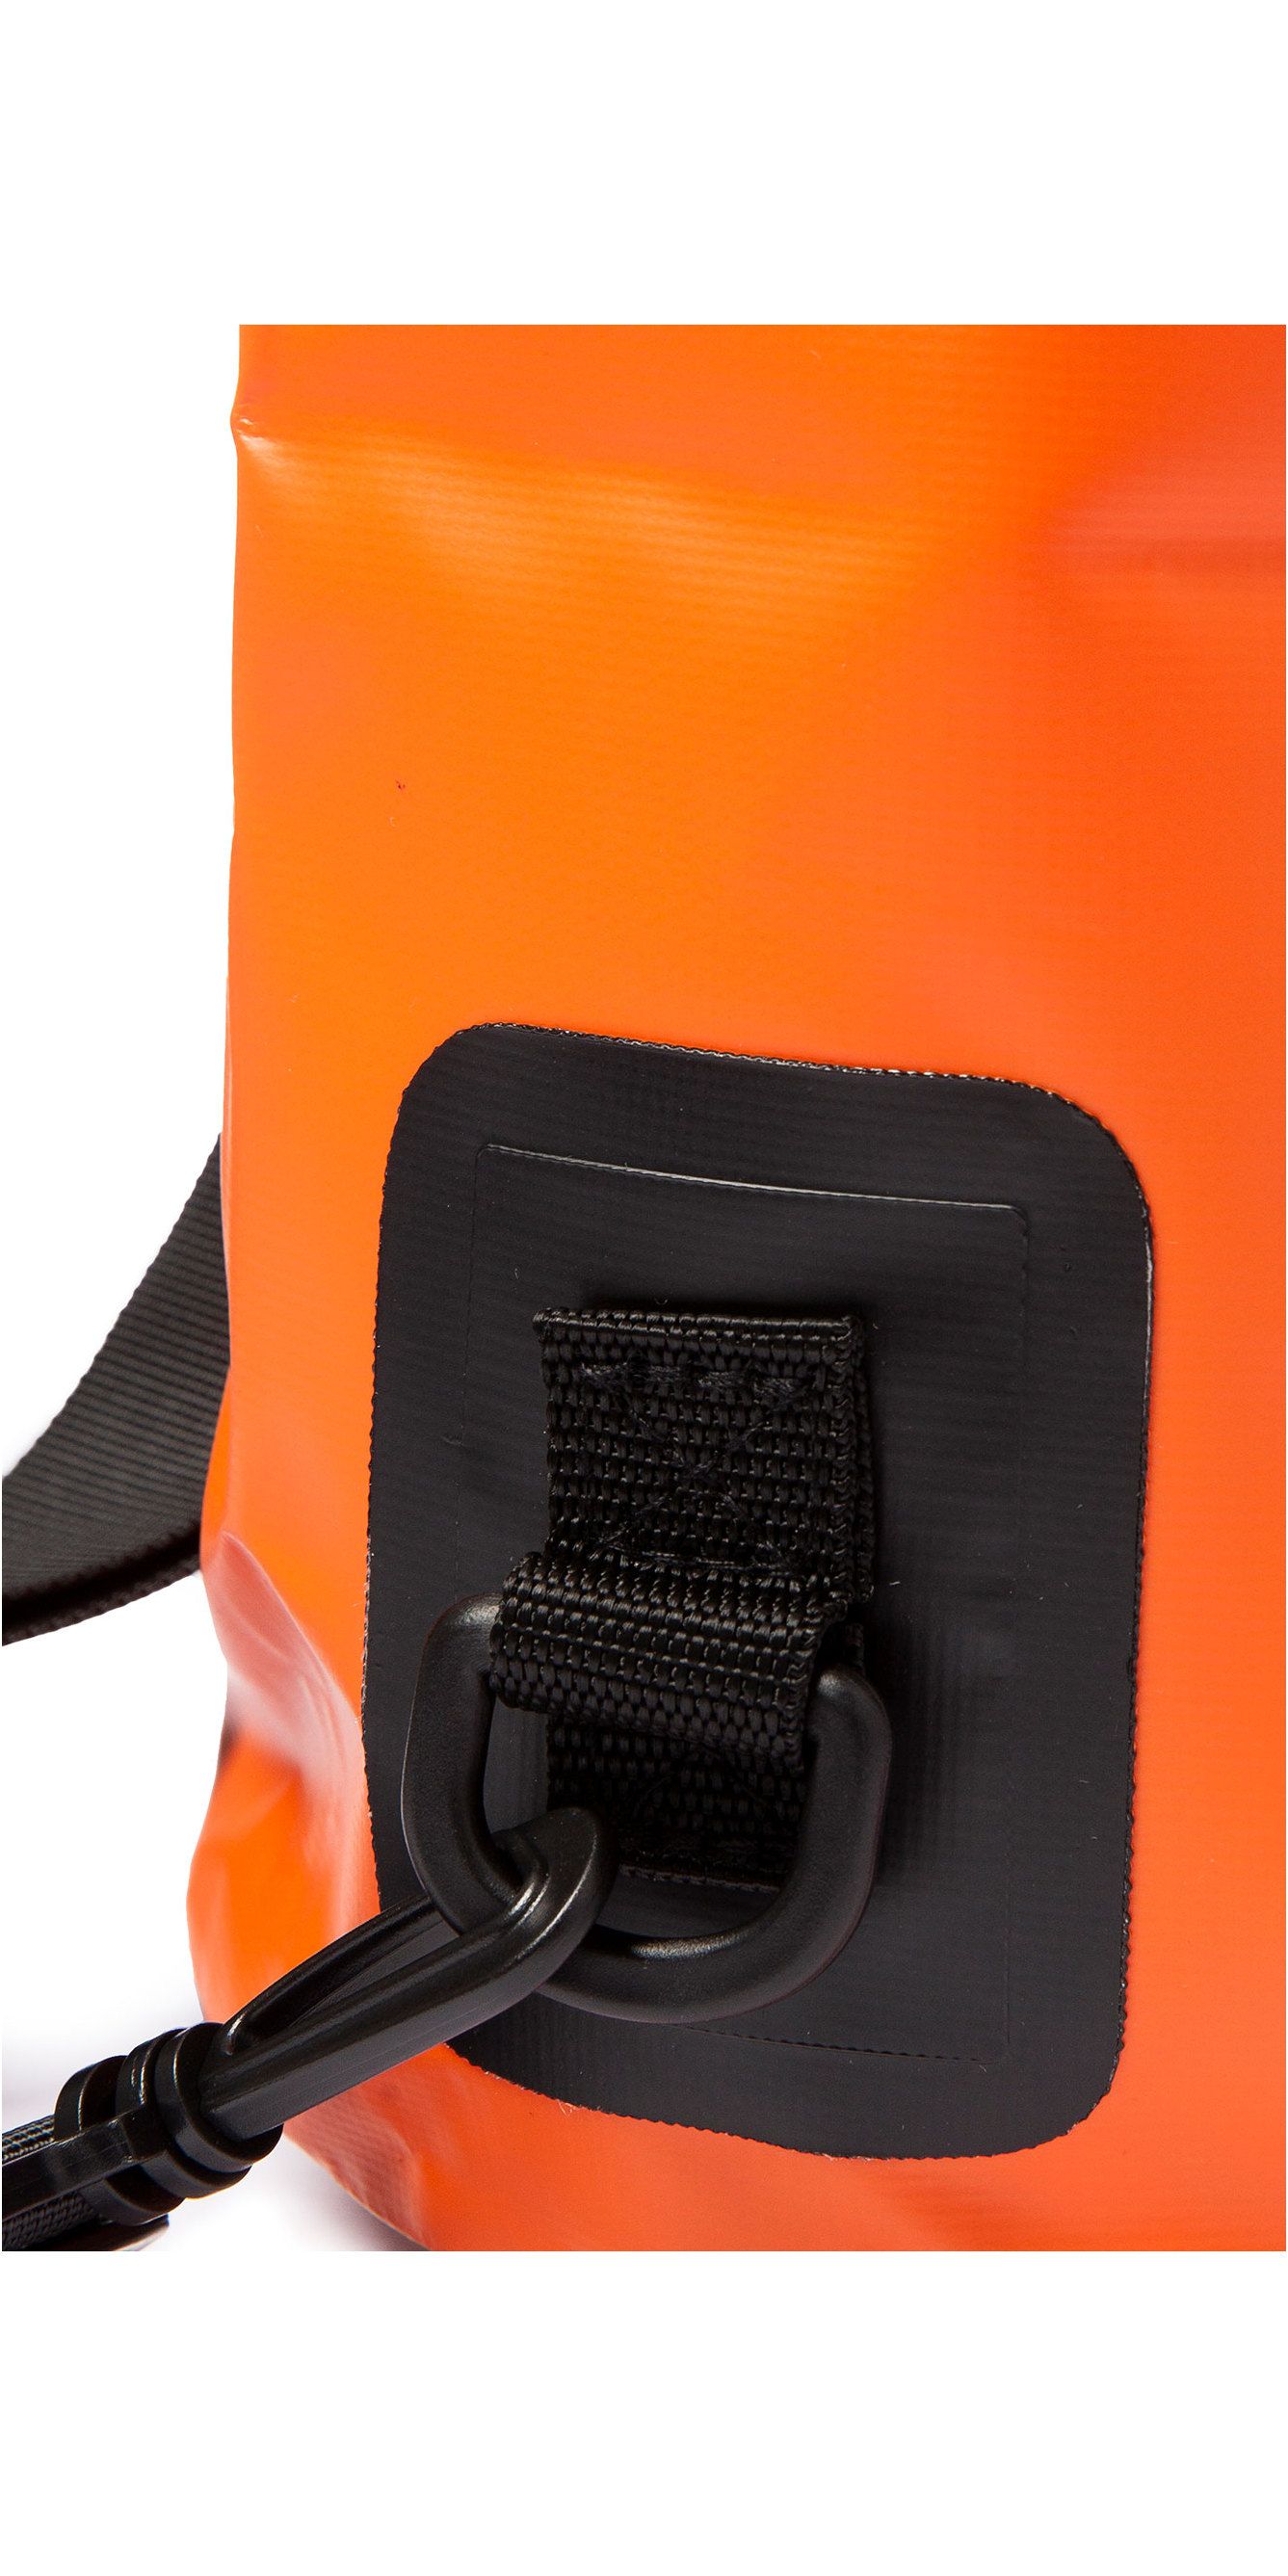 2020 Nava Performance 10l Drybag Mit Schultergurt Nava007 - Orange